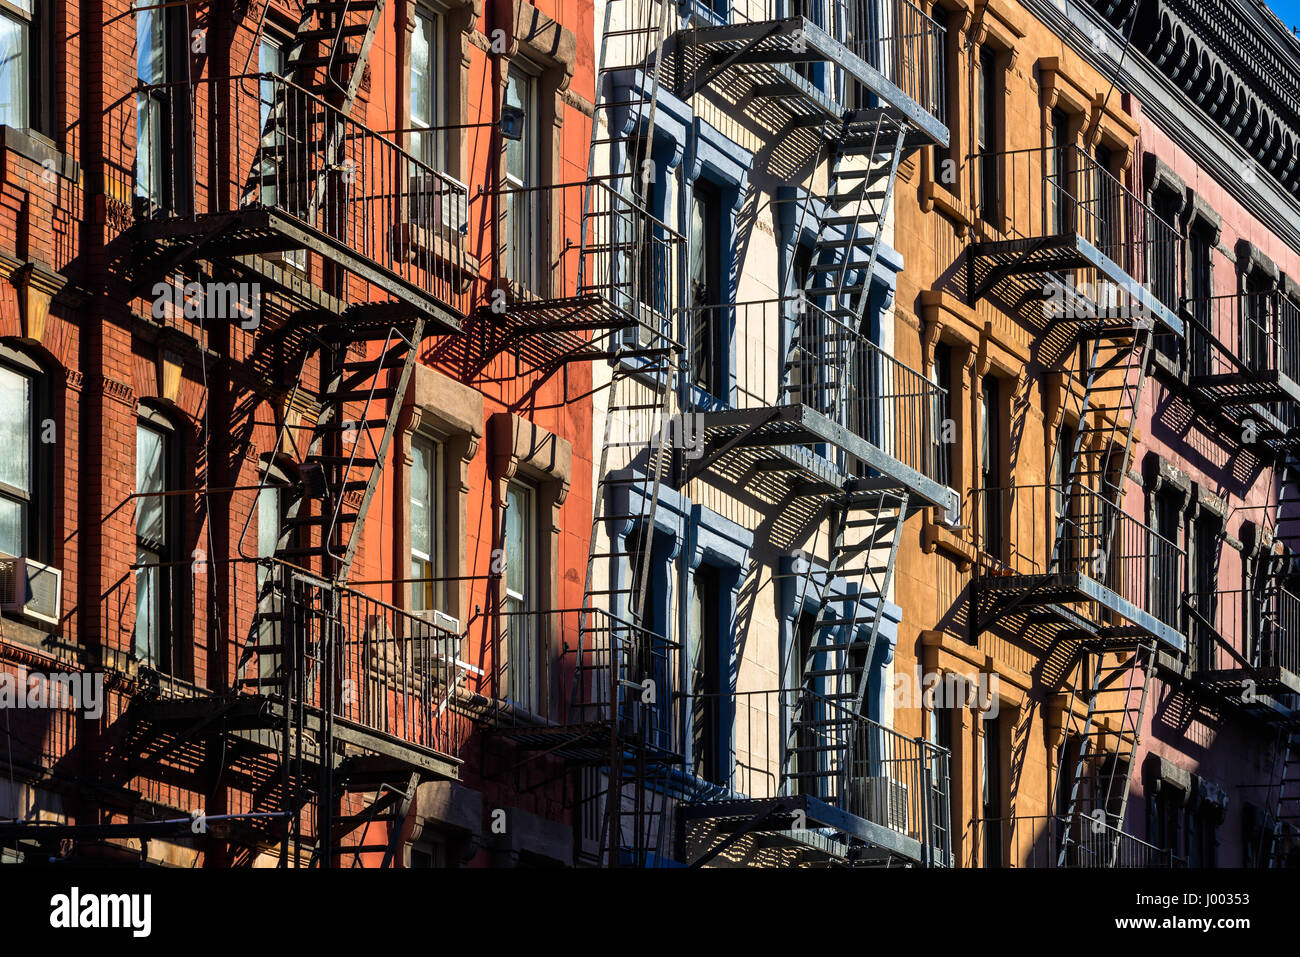 Colorful Soho building facades with painted fire escapes. Manhattan, New York City - Stock Image